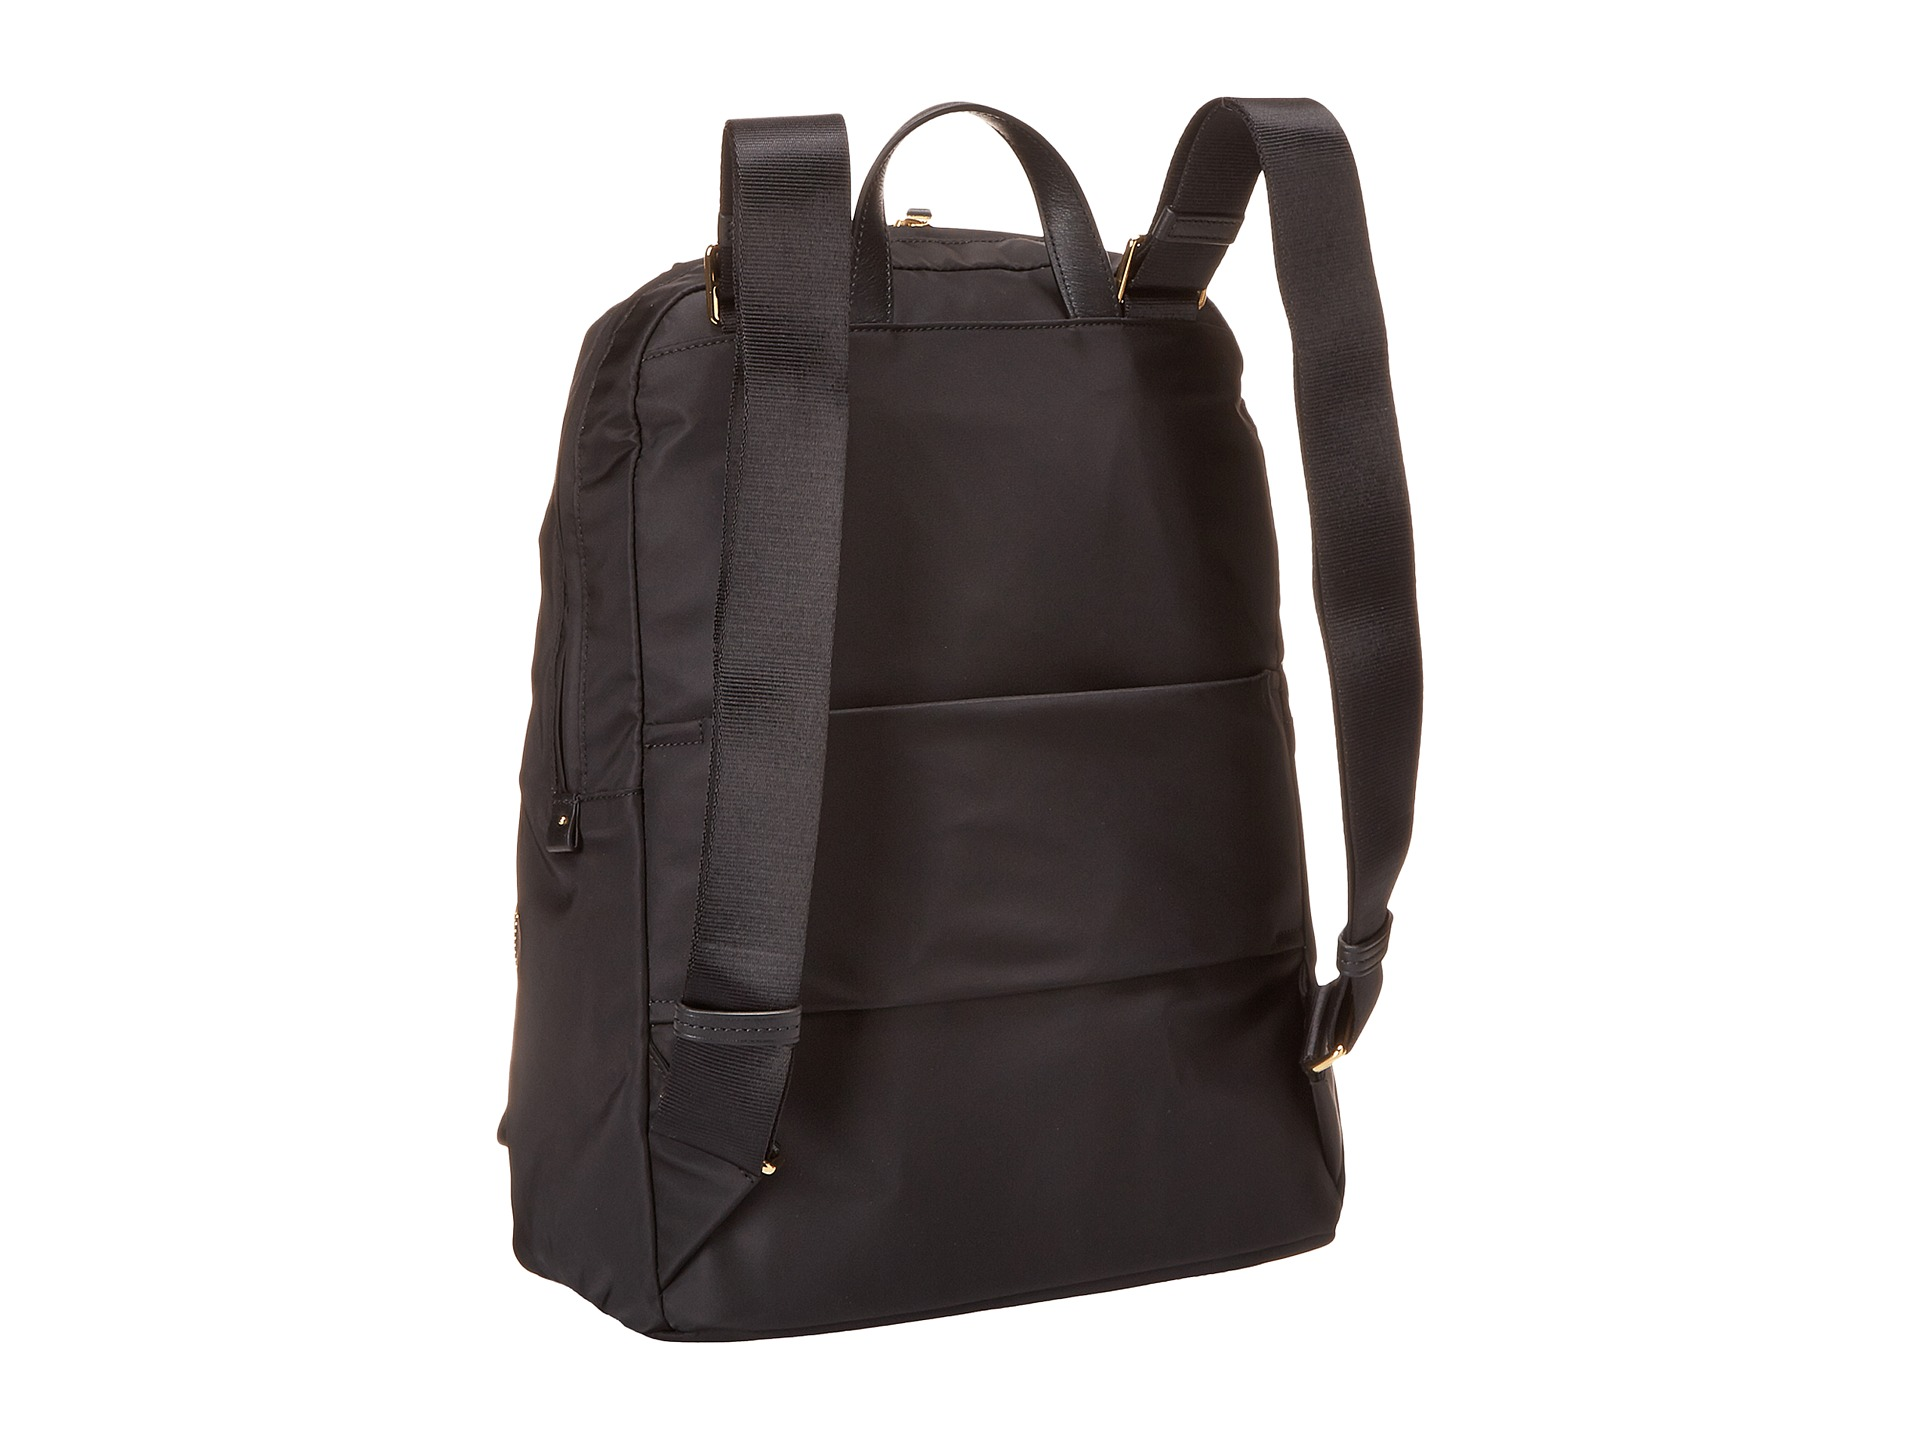 Tumi Voyageur Halle Backpack Zappos Com Free Shipping